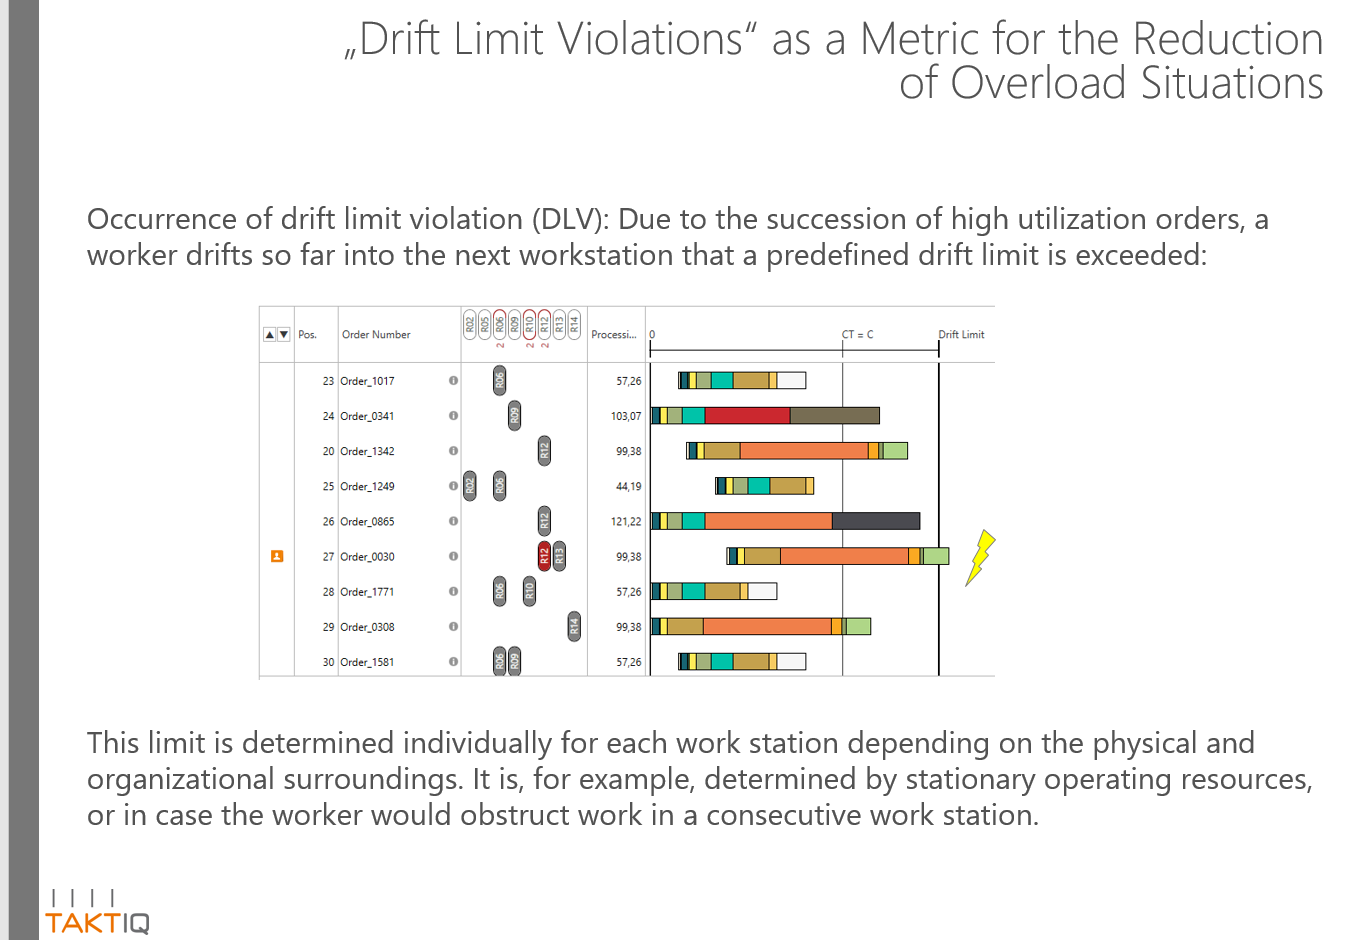 Drift limit violations as a metric fot the reduction of overload situations